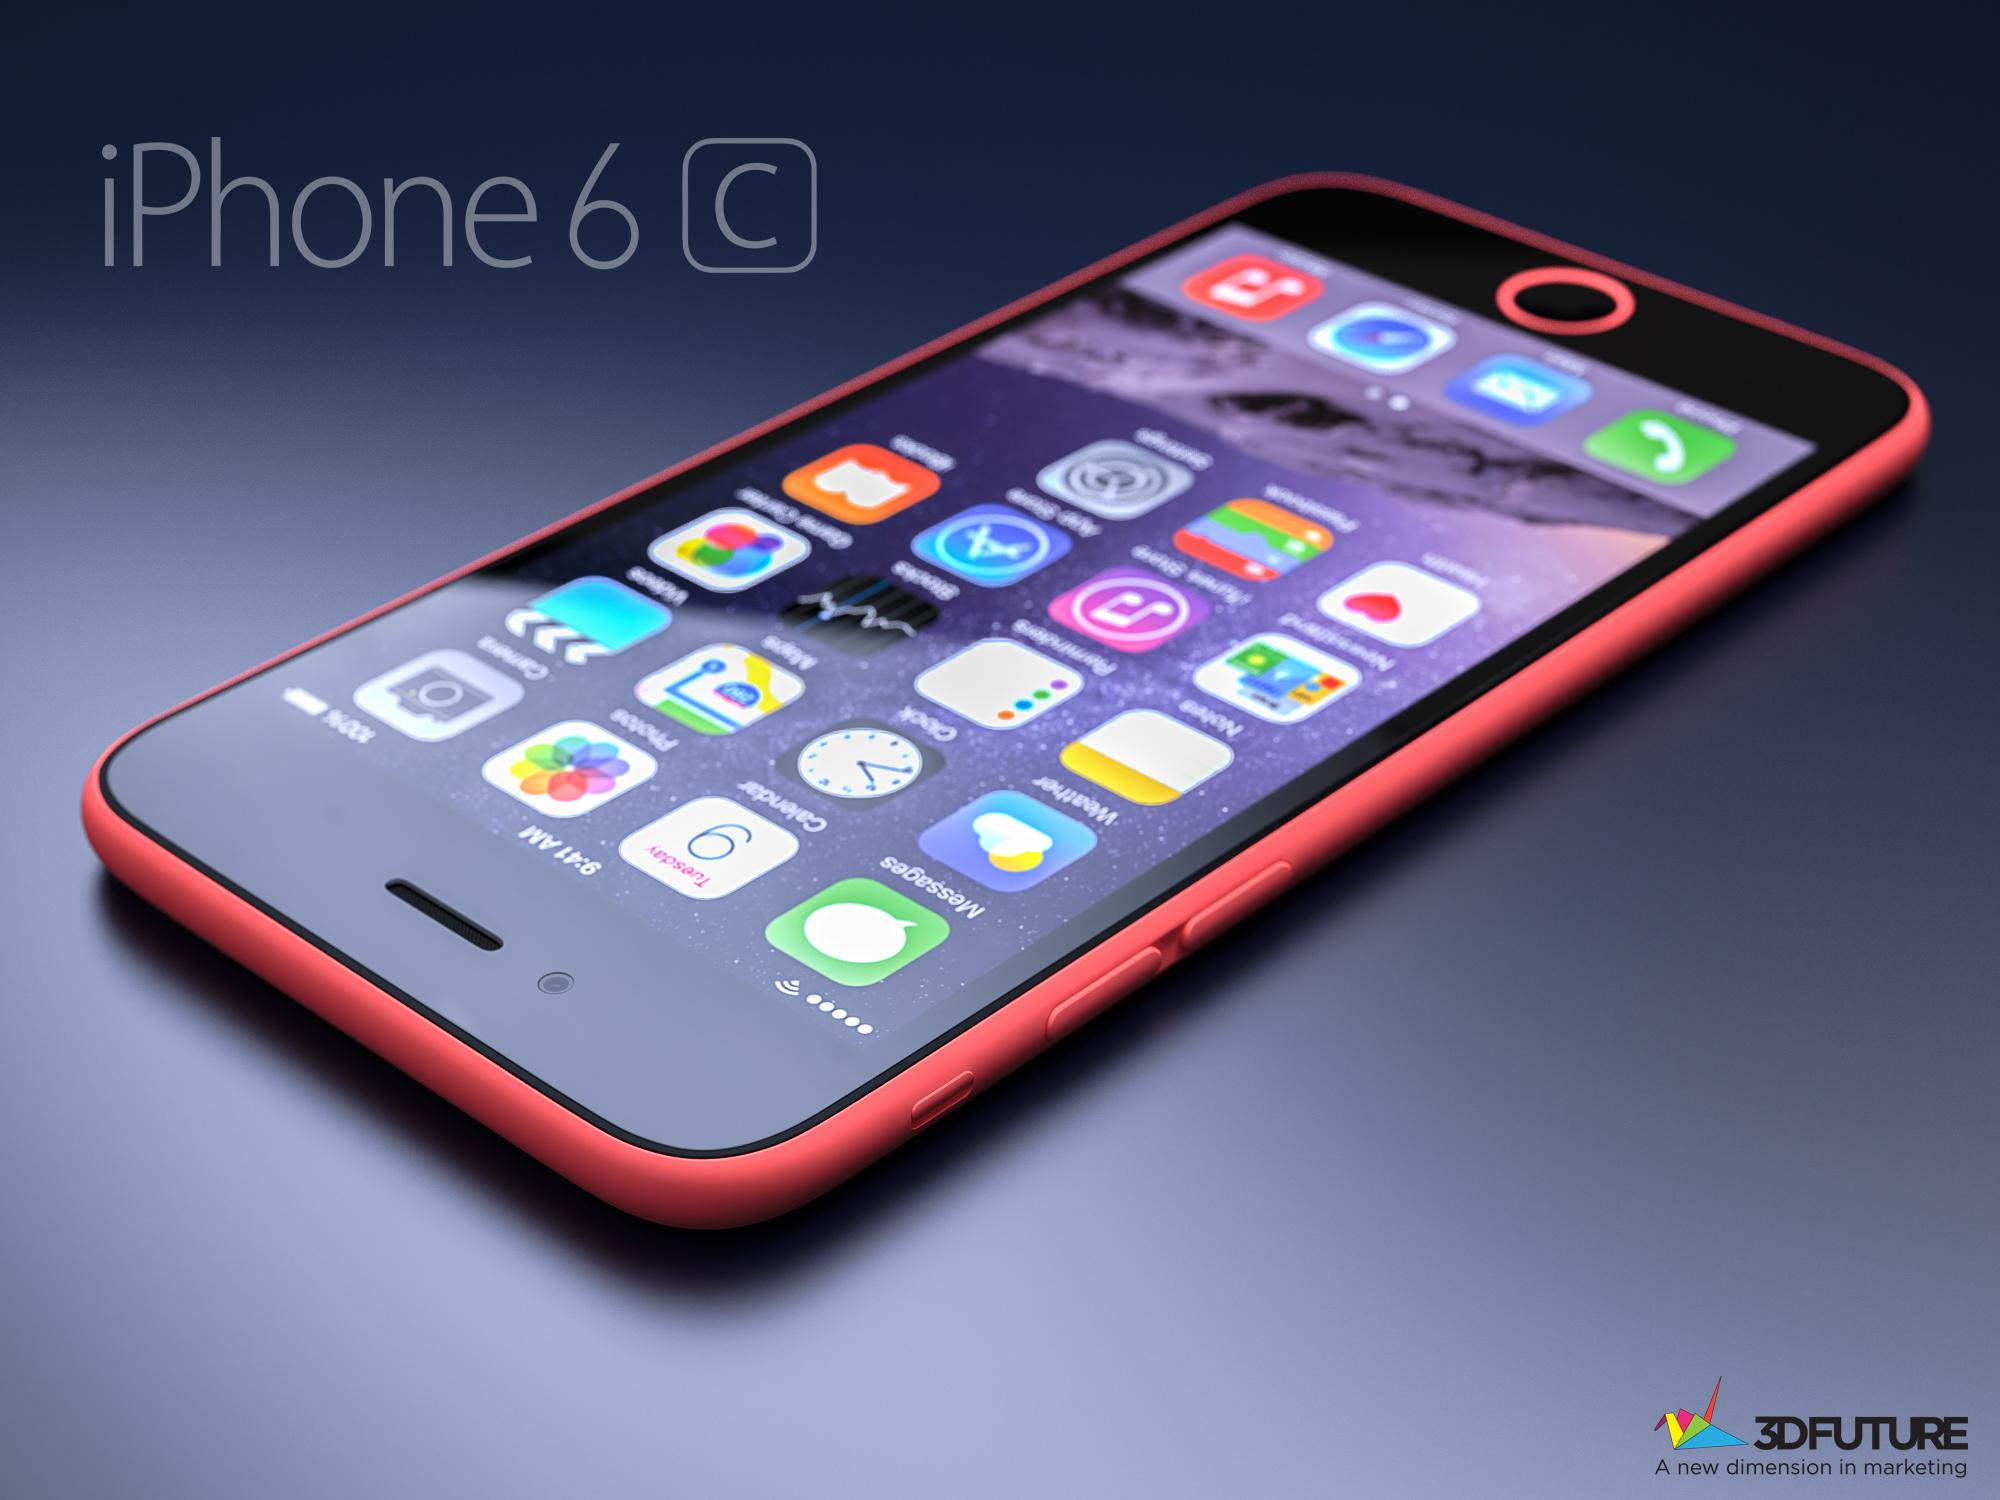 A concept render of the iPhone 6c Source: 3D Future/Twitter